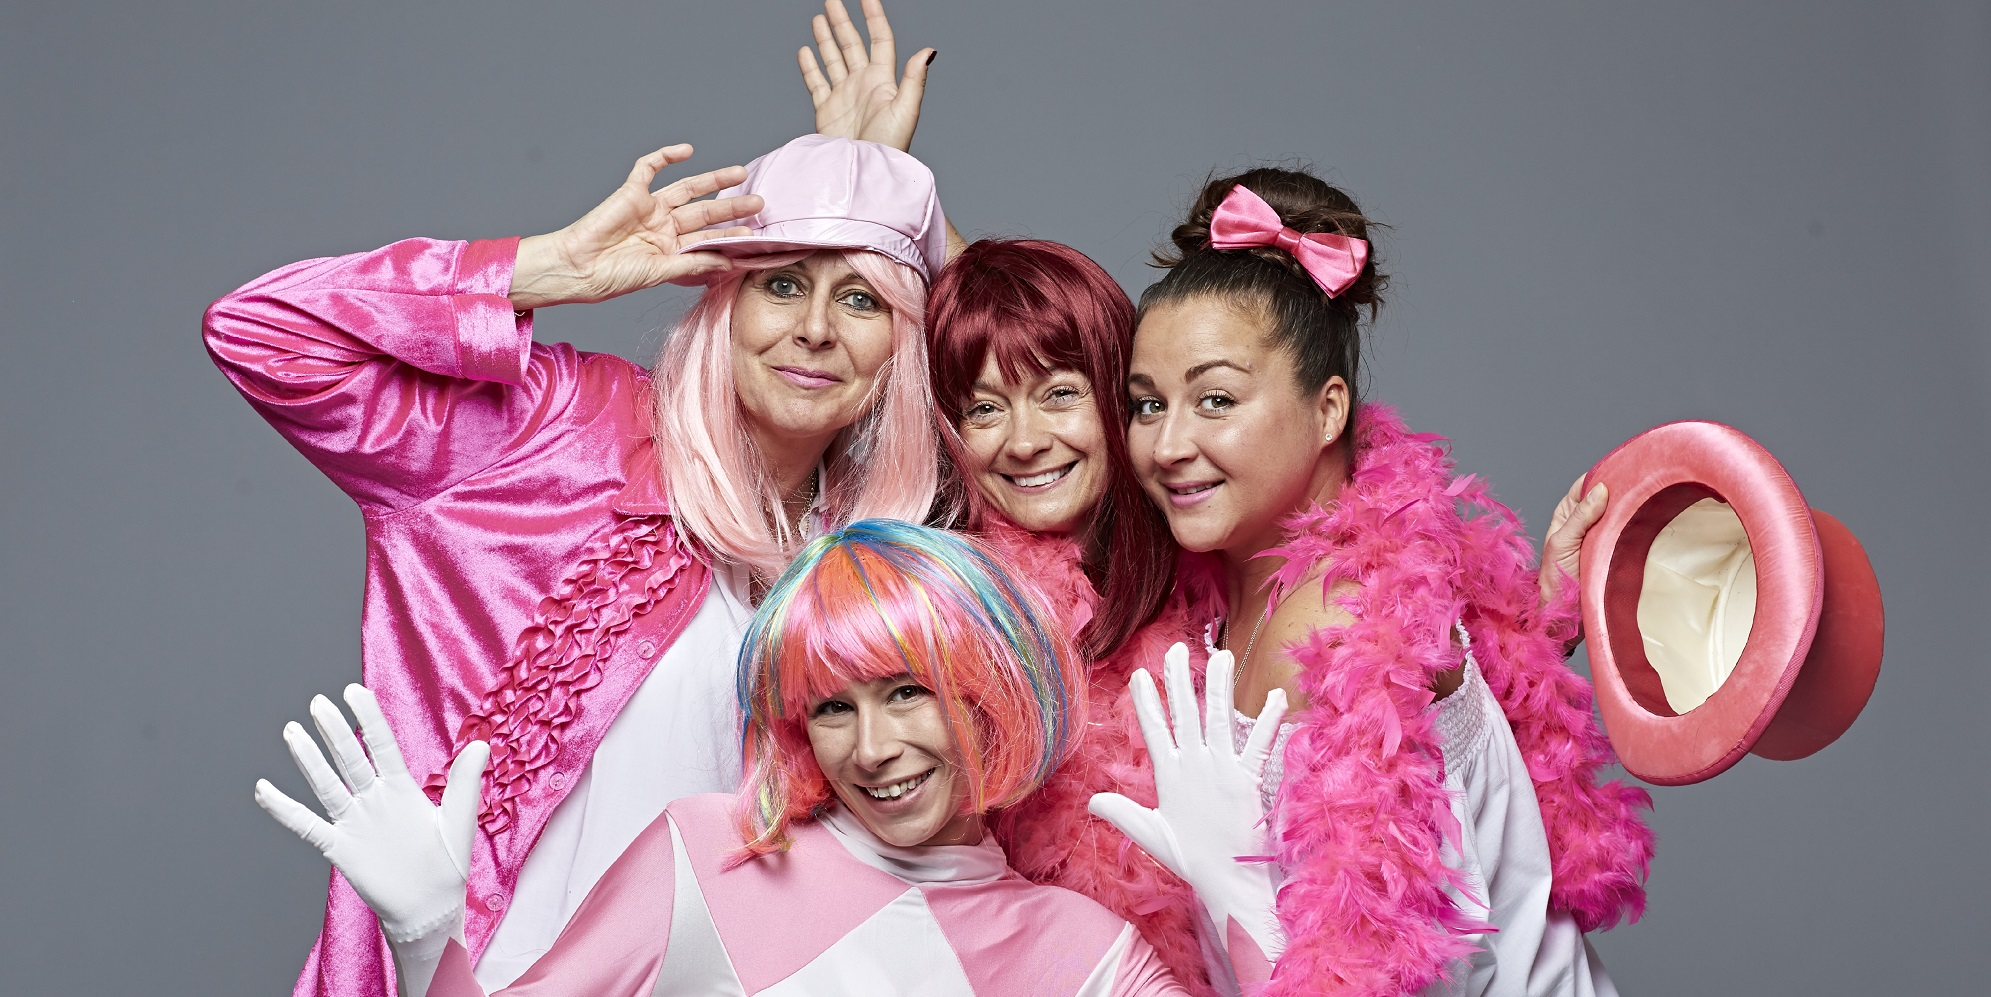 15. Breast Cancer Now - Wear It Pink